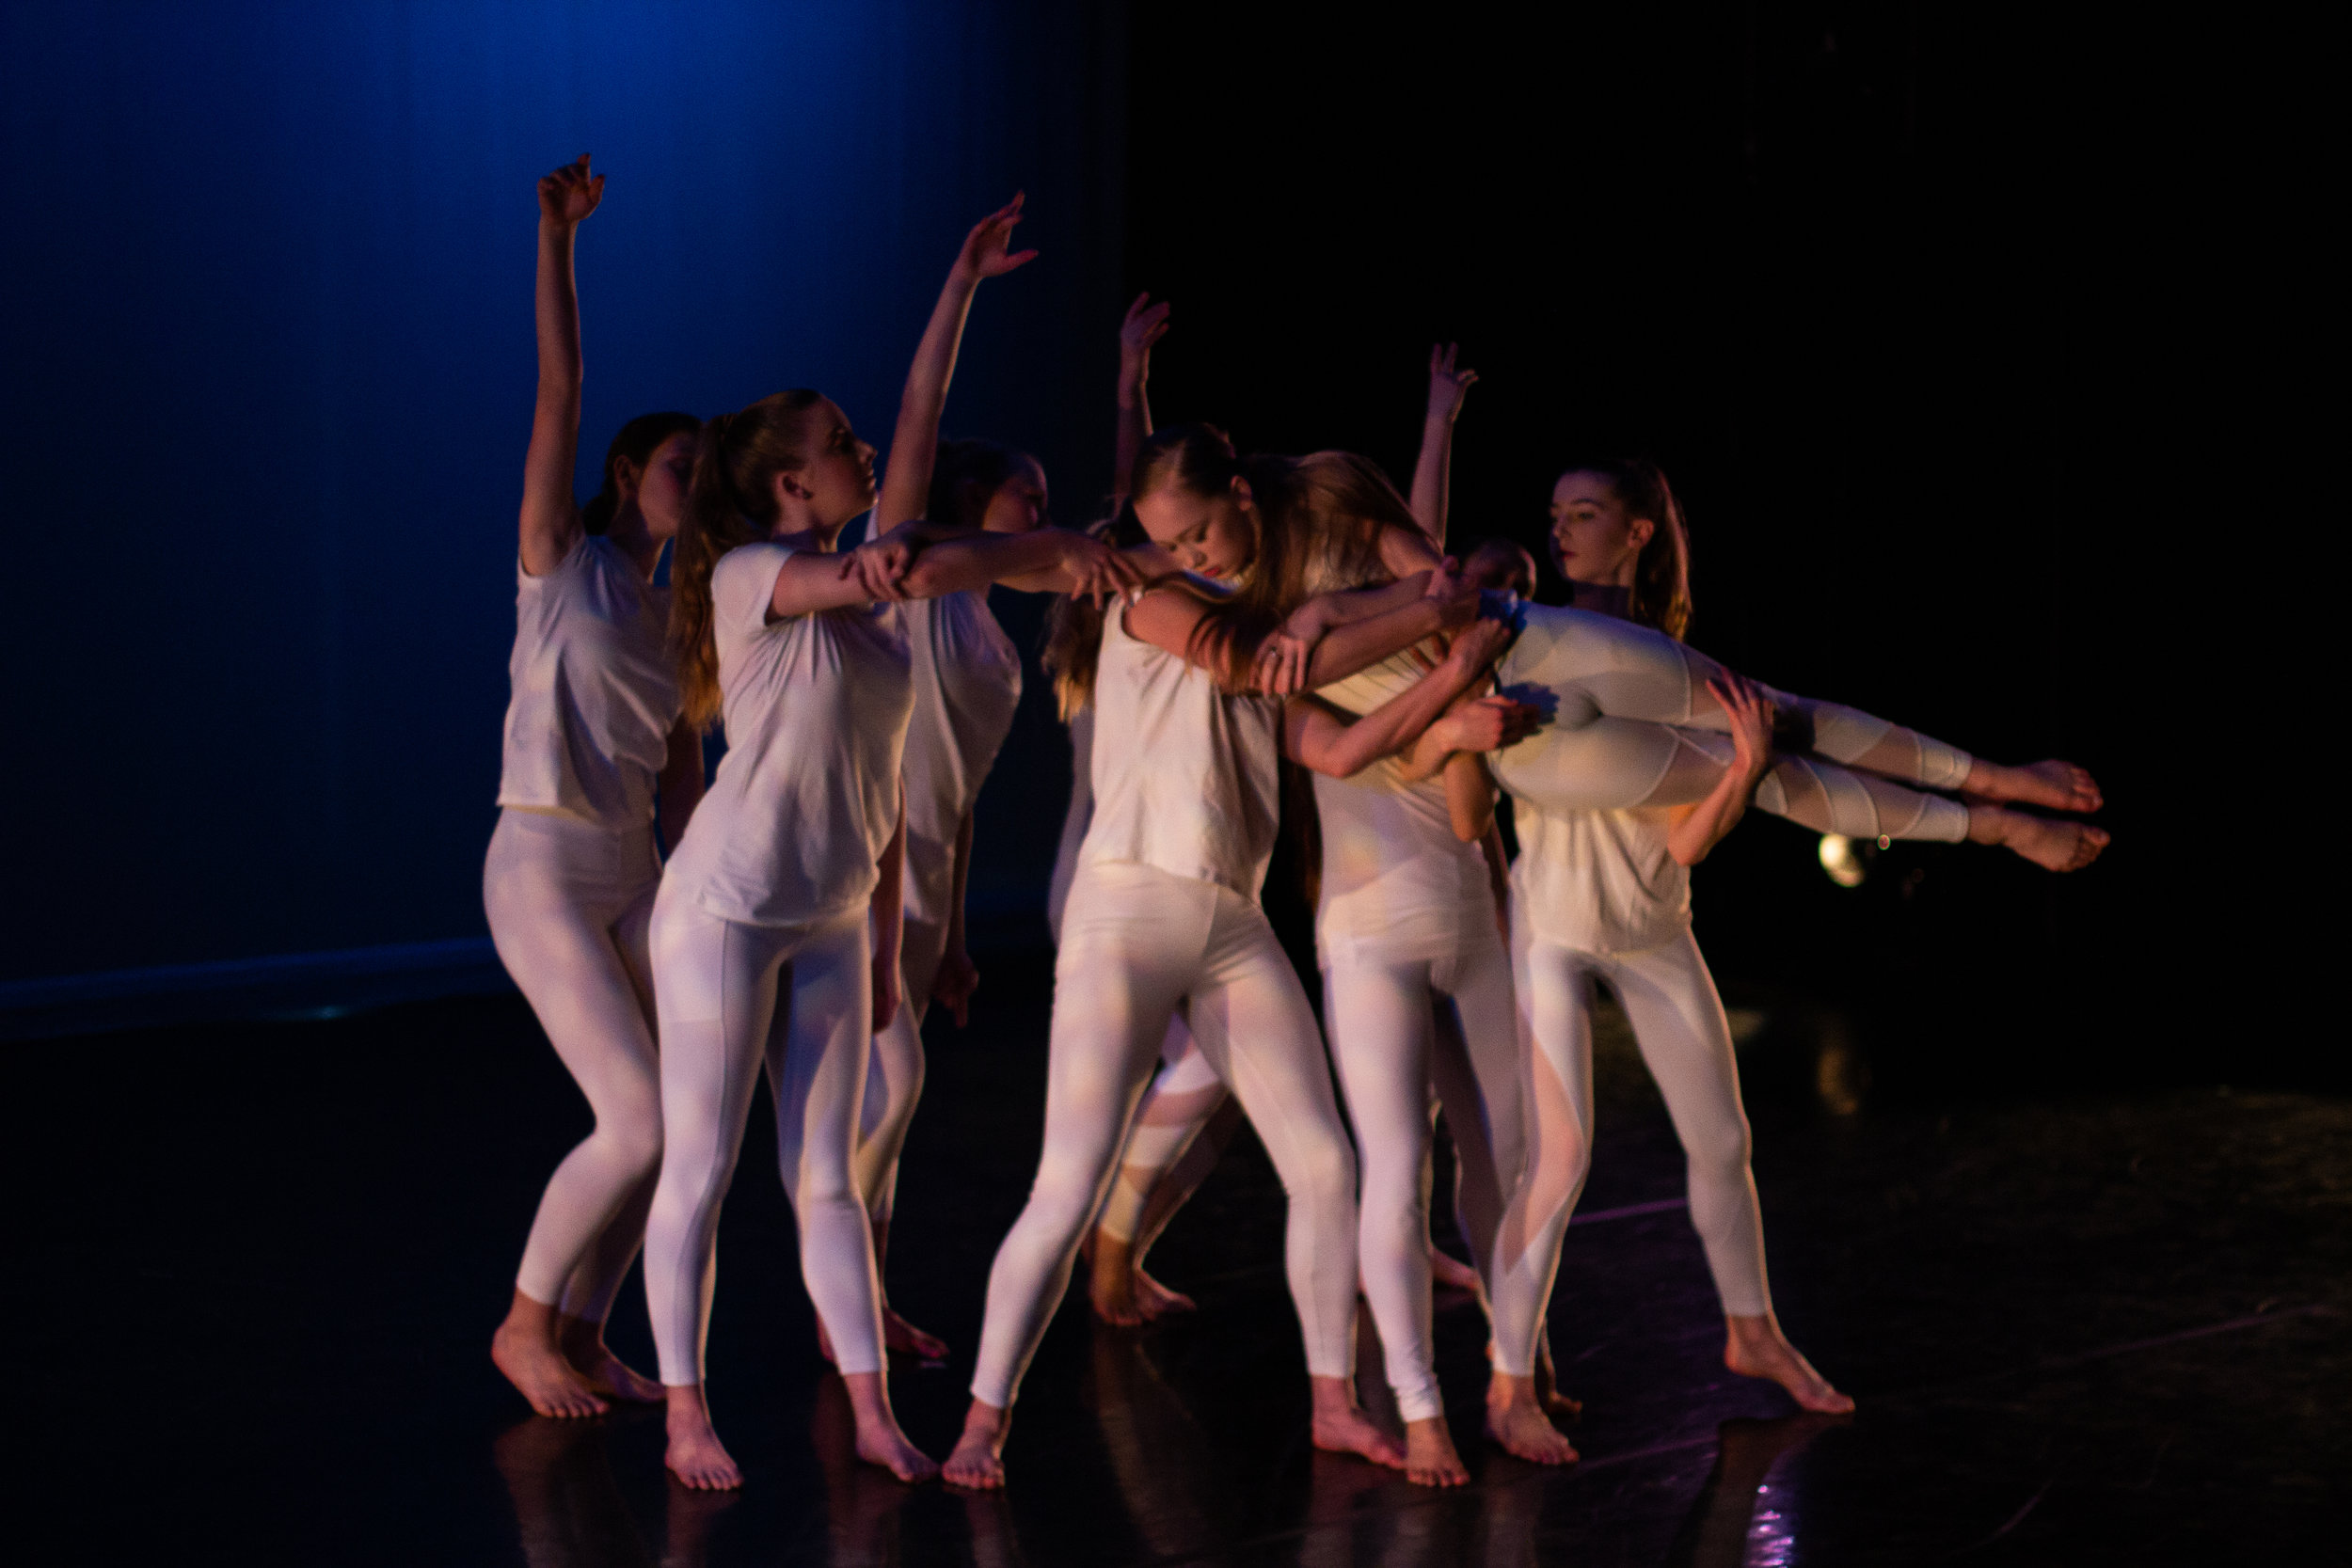 youth live performance works - All Youth Live Performance submissions must either be choreographed/made by persons 18 years and younger and/or performed by persons 18 years and younger and will be performed on Sunday, March 8, 2020 in the Wellspring Theater at the Epic Center. All works must be 10 minutes or less.